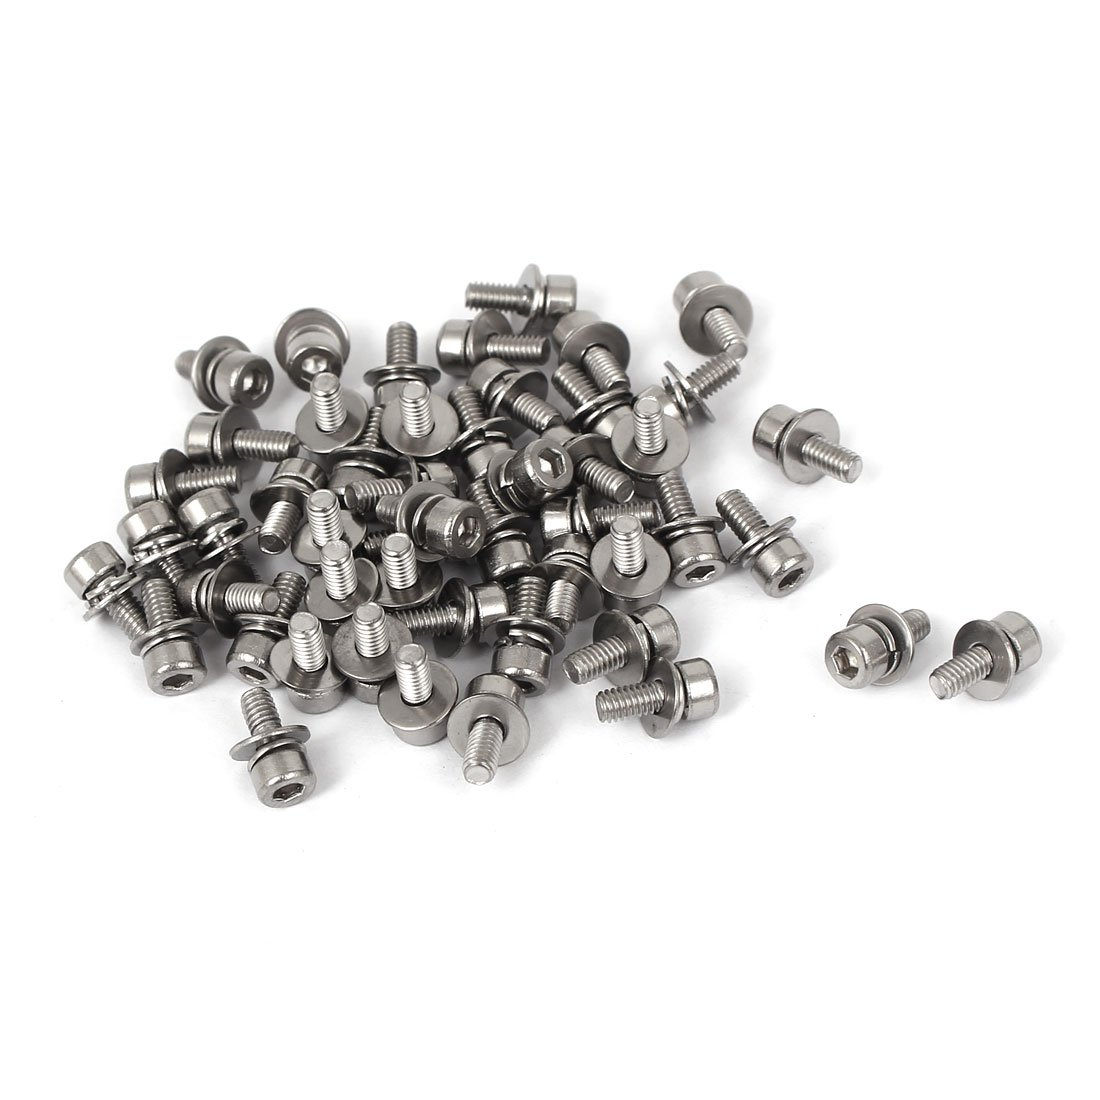 Uxcell a16042100ux1449 M2.5 x 6mm 0.45mm Thread Pitch Hex Socket Head Cap Screw w Washer 50pcs